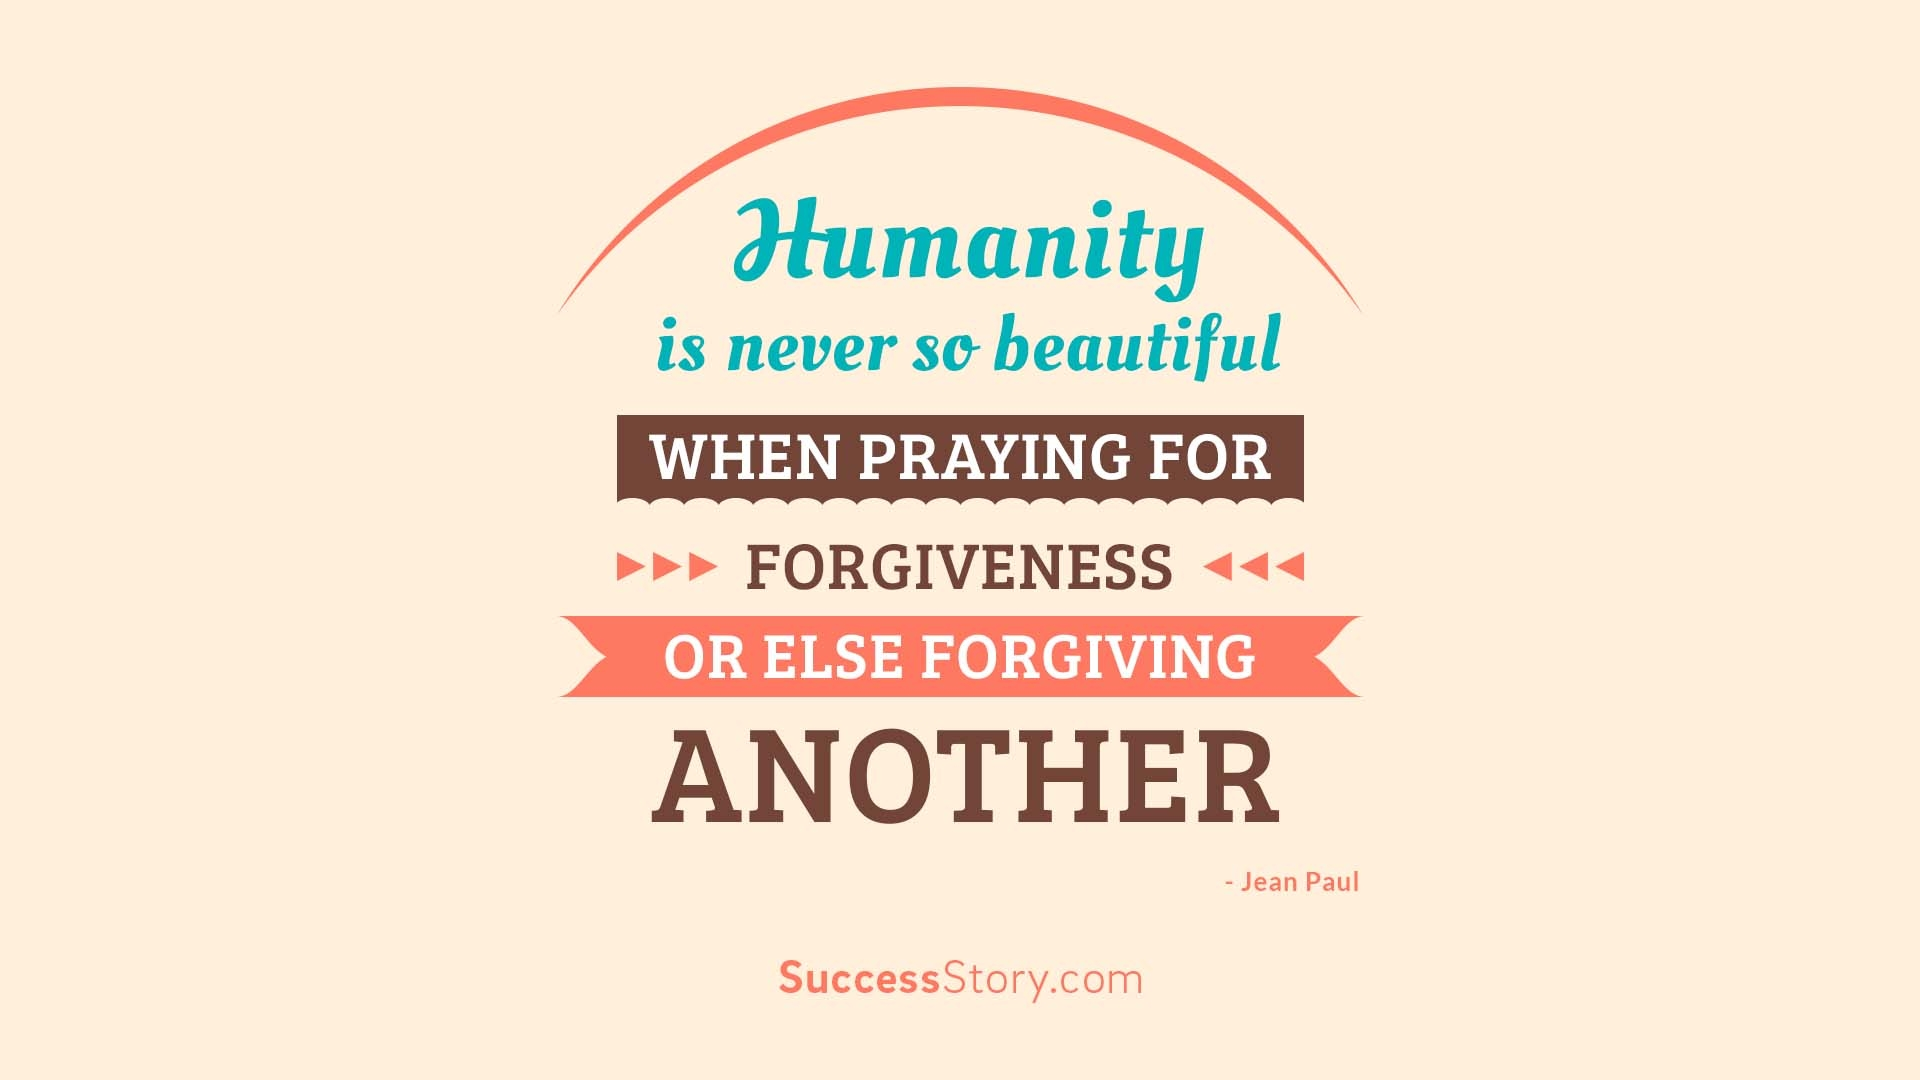 Humanity is never